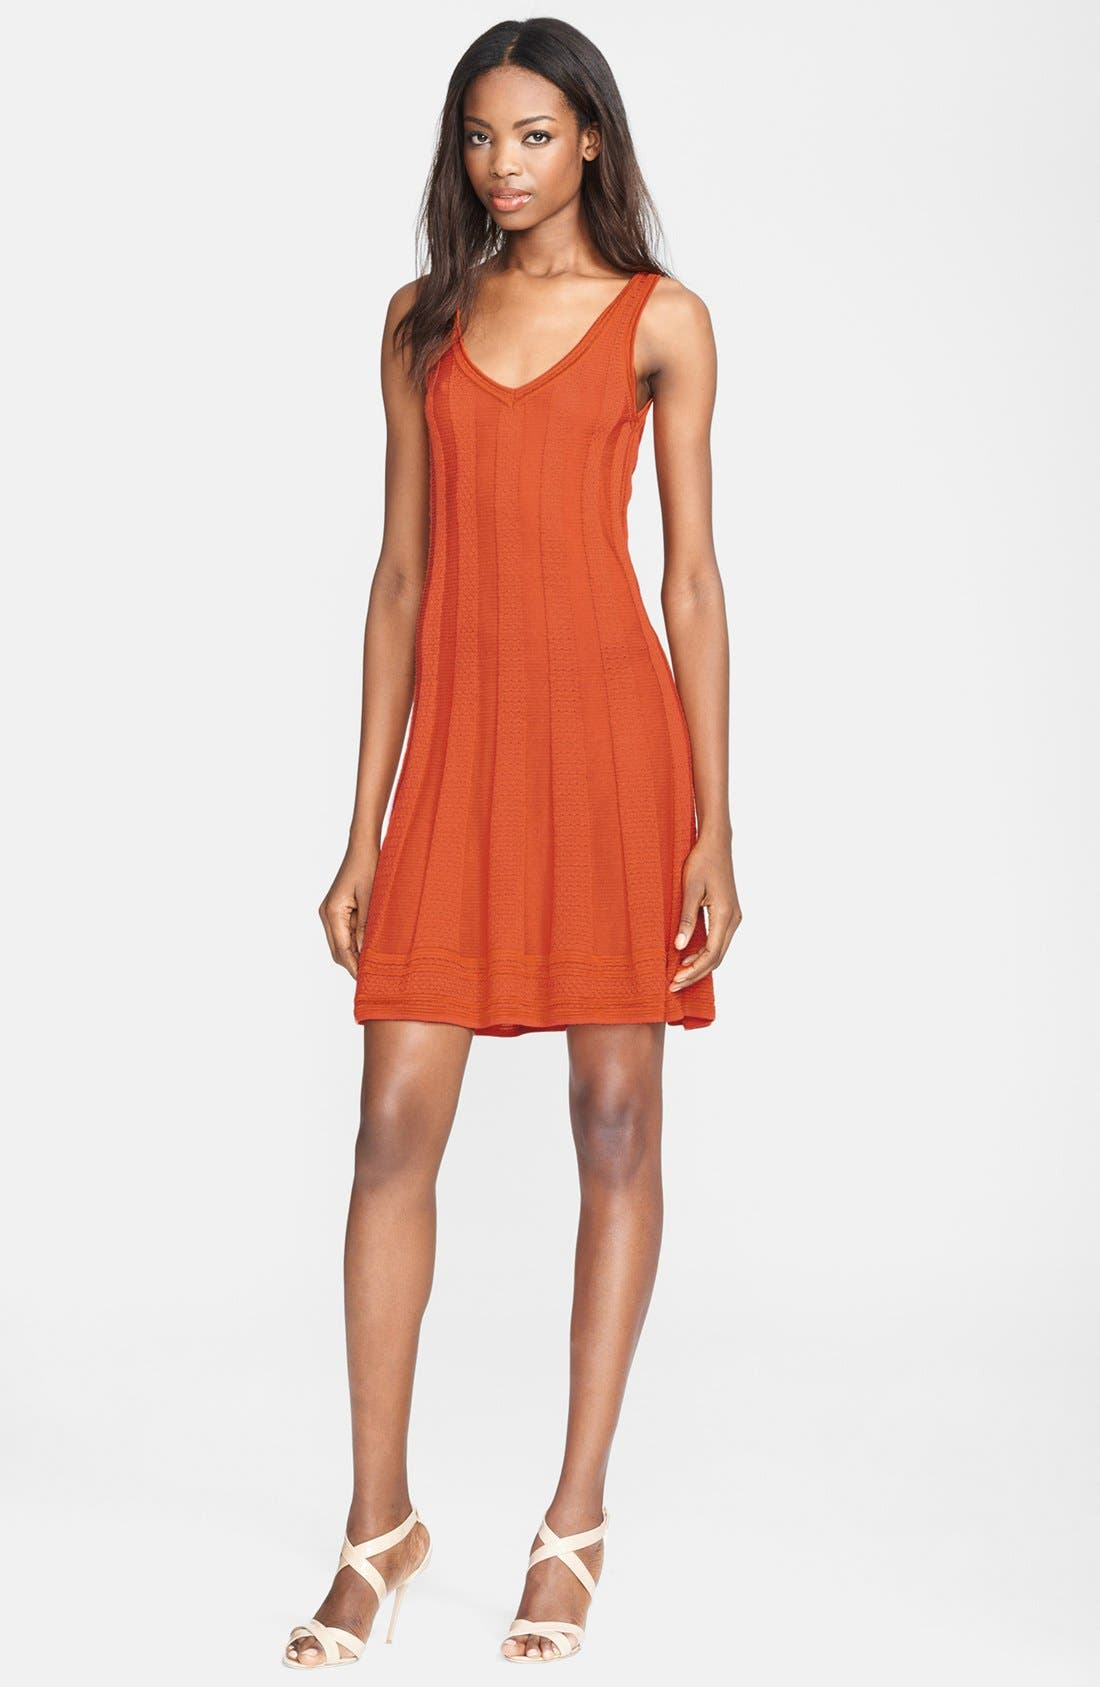 Alternate Image 1 Selected - M Missoni Sleeveless V-Neck Knit Dress